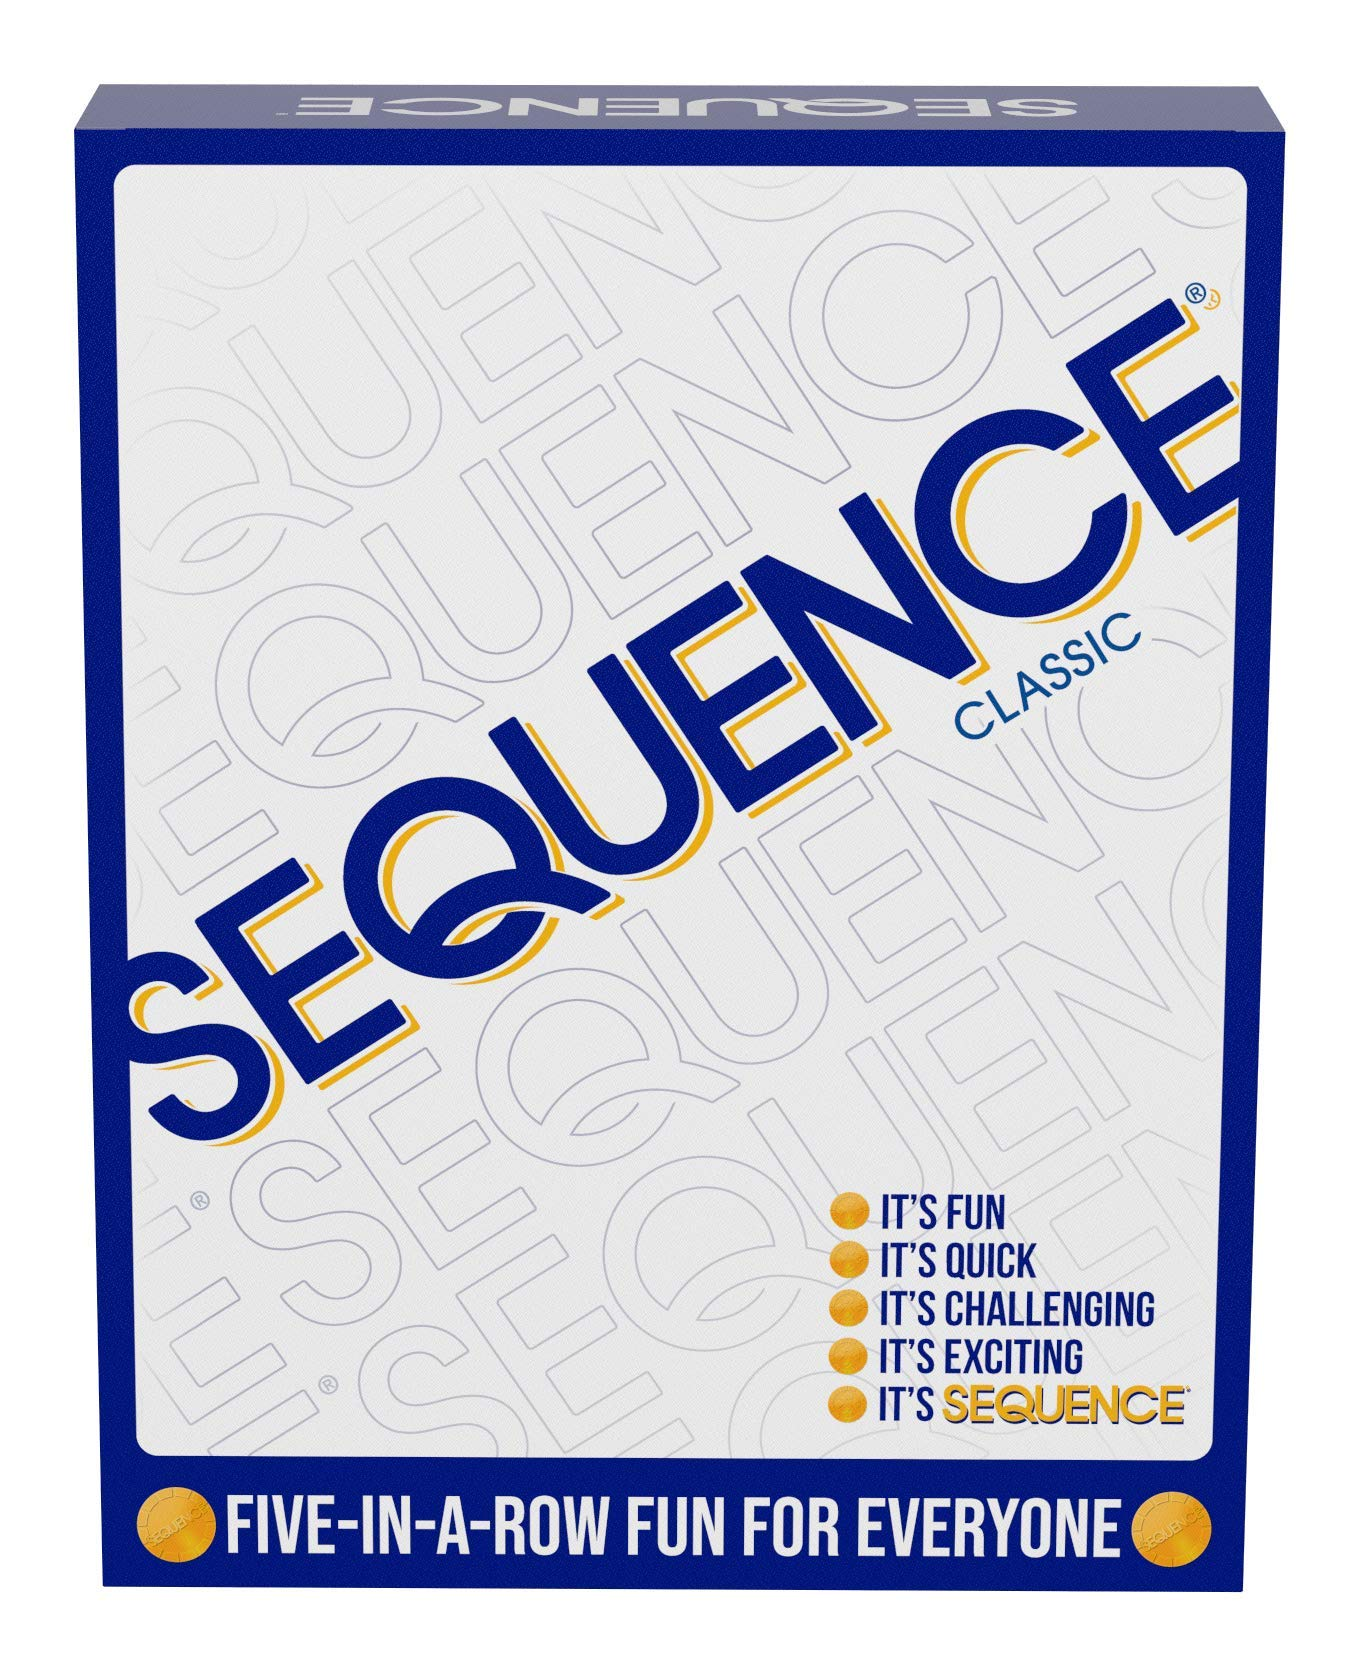 "SEQUENCE- Original SEQUENCE Game with Folding Board, Cards and Chips by Jax ( Packaging may Vary ) White, 10.3"" x 8.1"" x 2.31"""